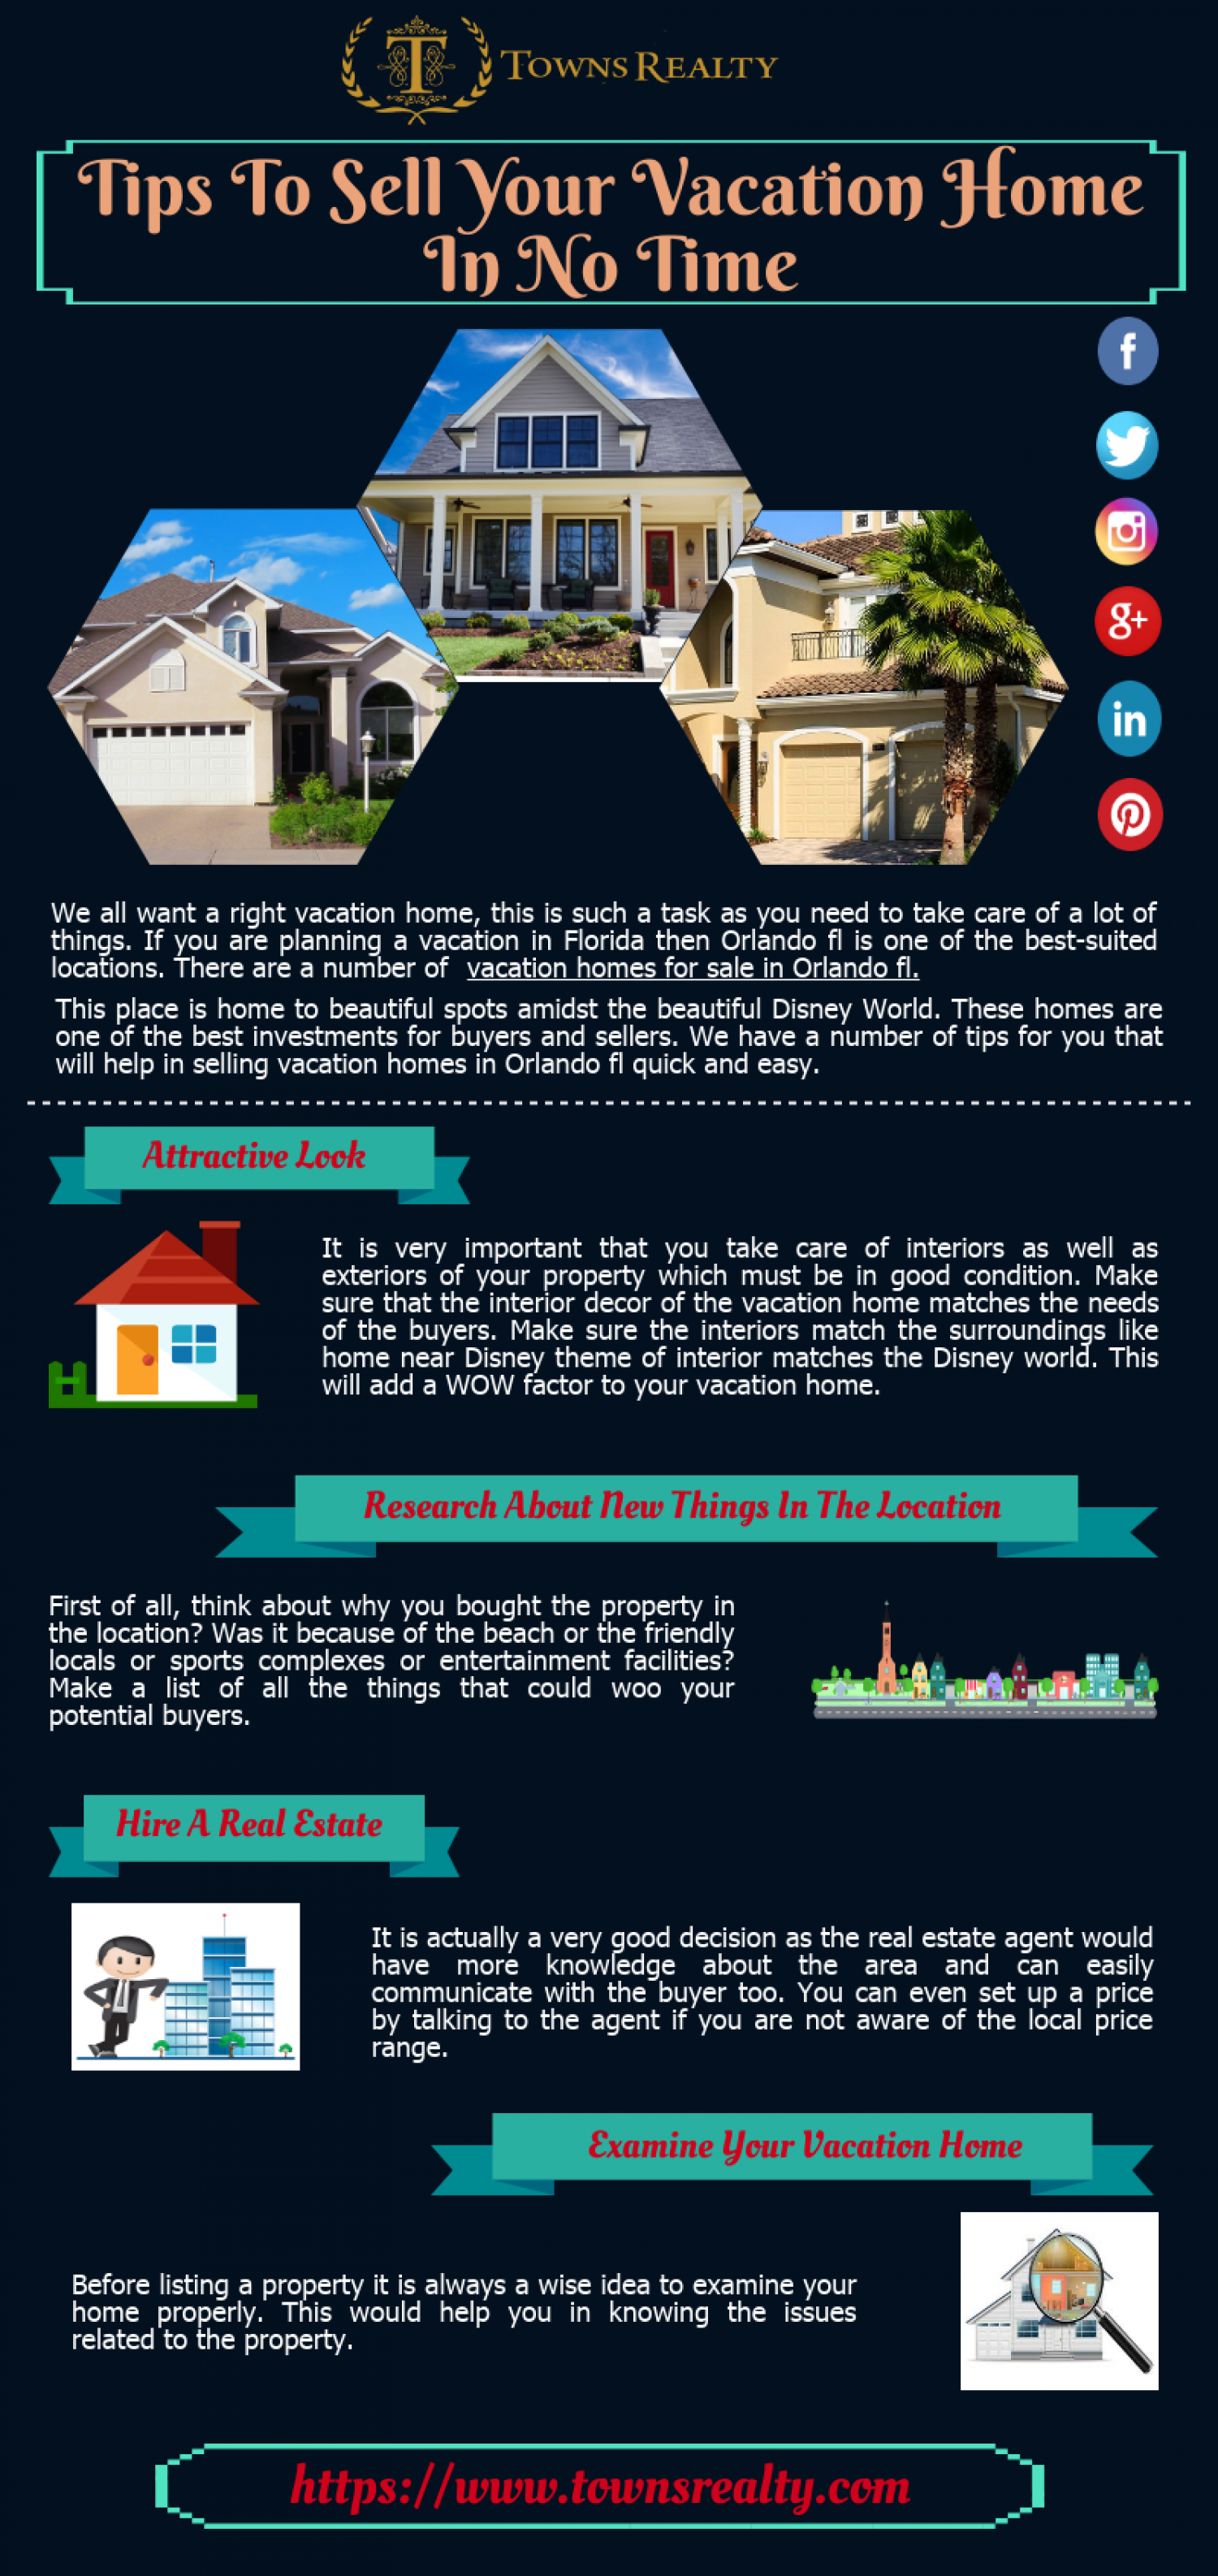 Tips To Sell Your Vacation Home in No Time Infographic